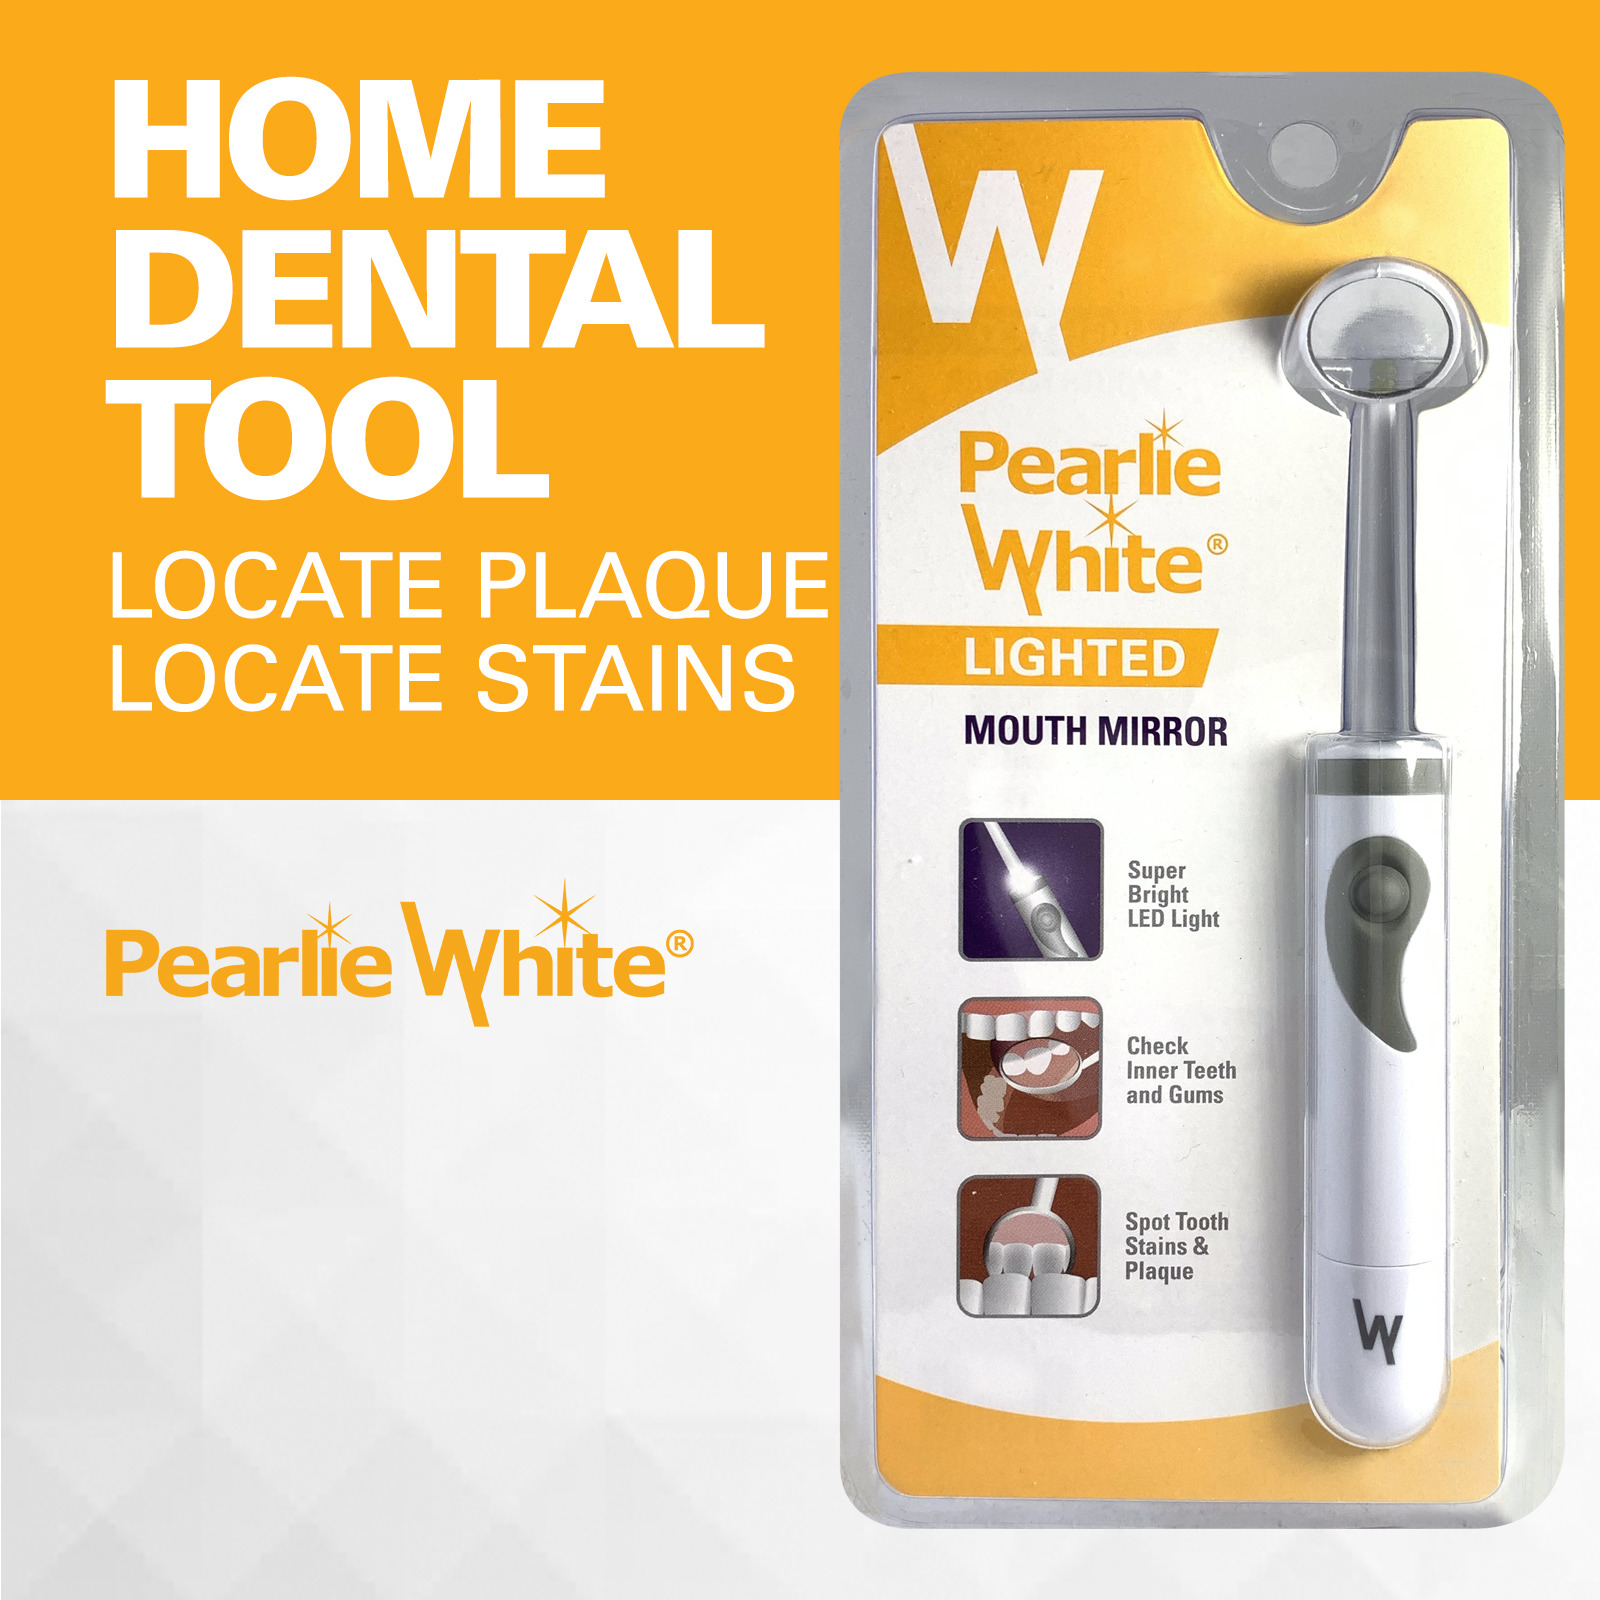 Pearlie White Lighted Mouth Mirror